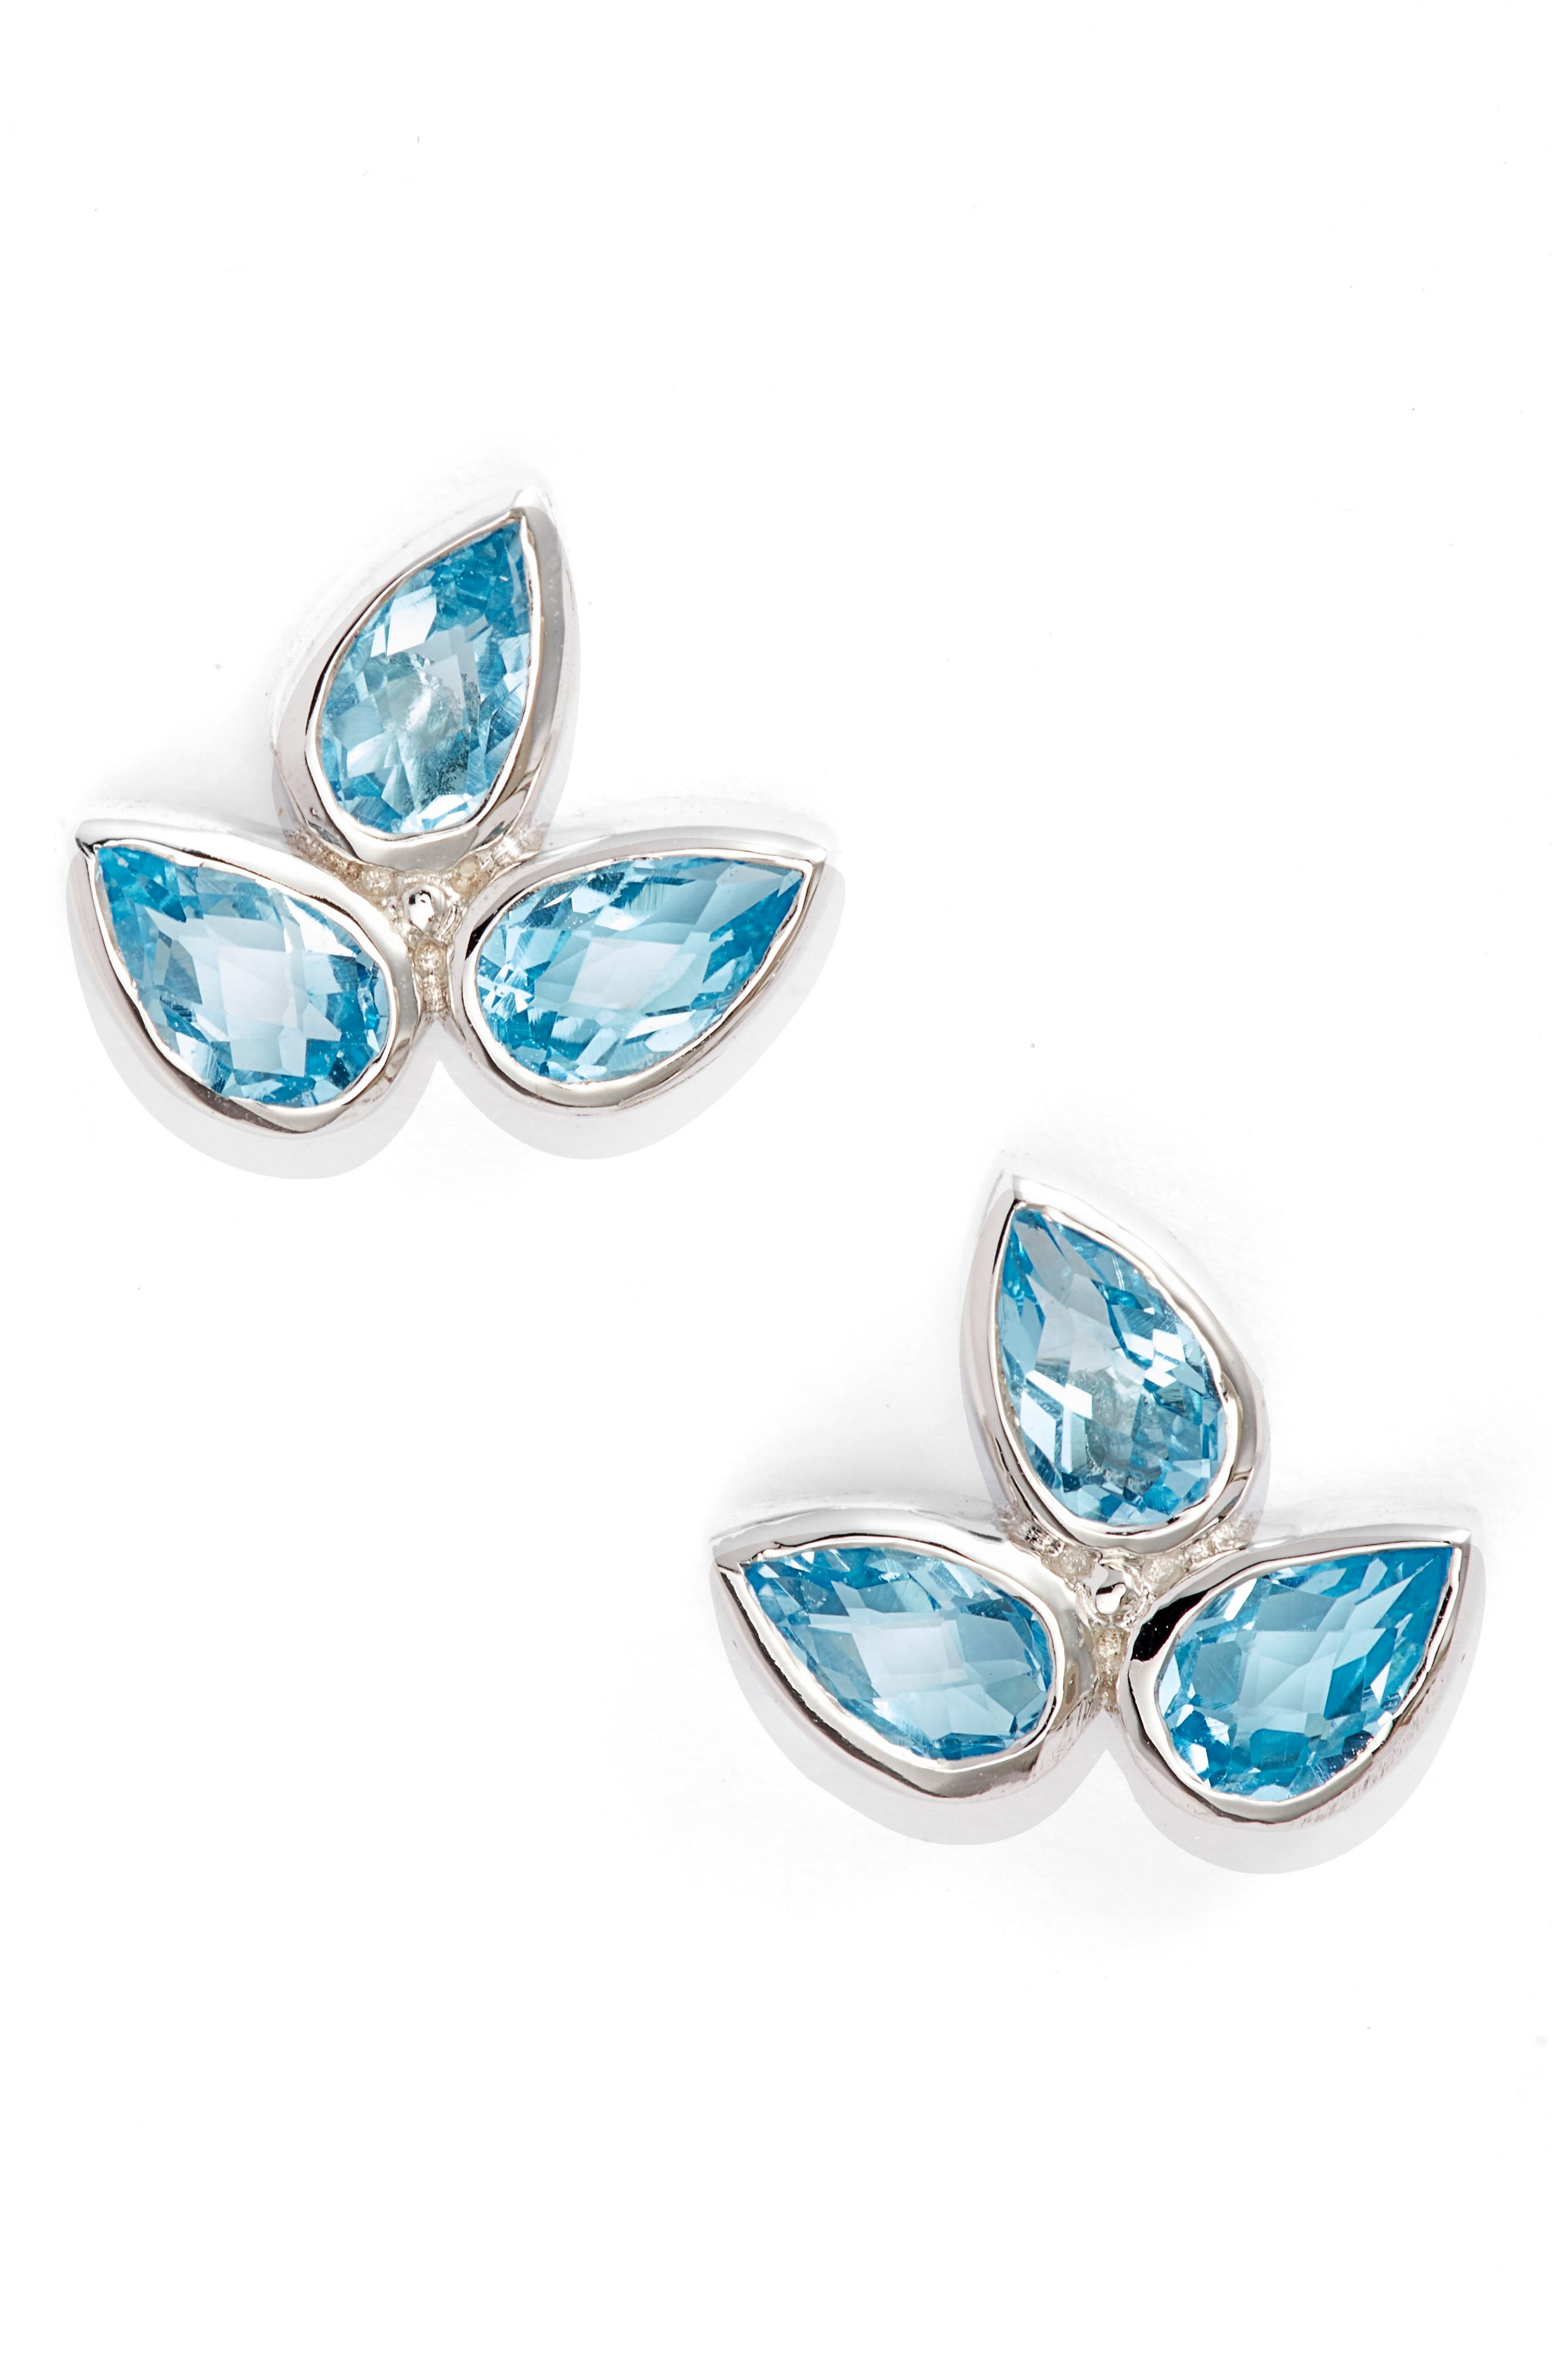 Micro Bouquet White Topaz Post Earrings,                         Main,                         color, BLUE TOPAZ